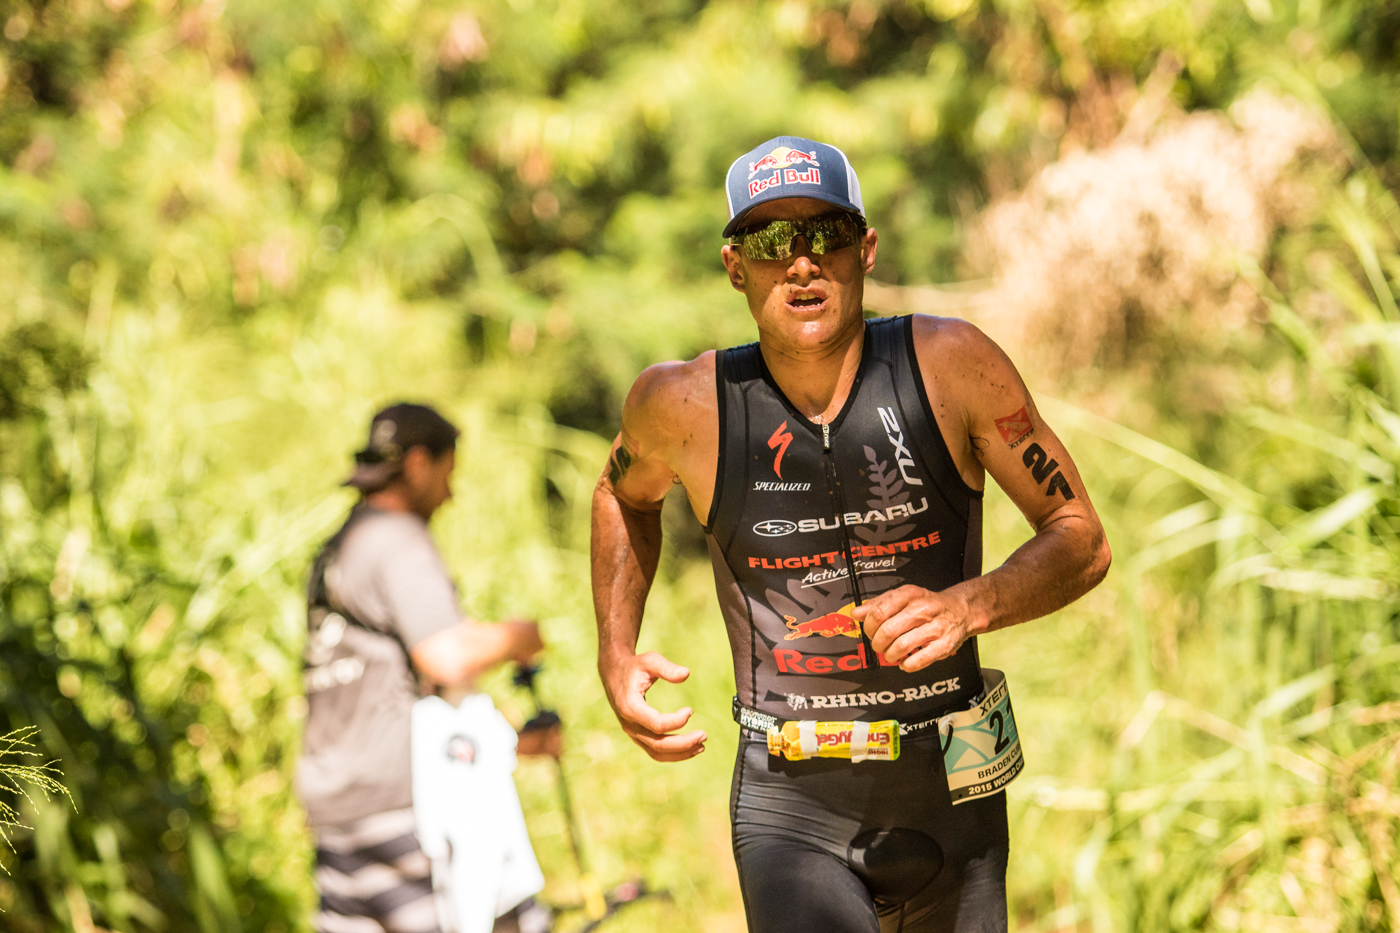 BRADEN CURRIE IS ONE STEP AWAY FROM WORLD XTERRA DOMINATION